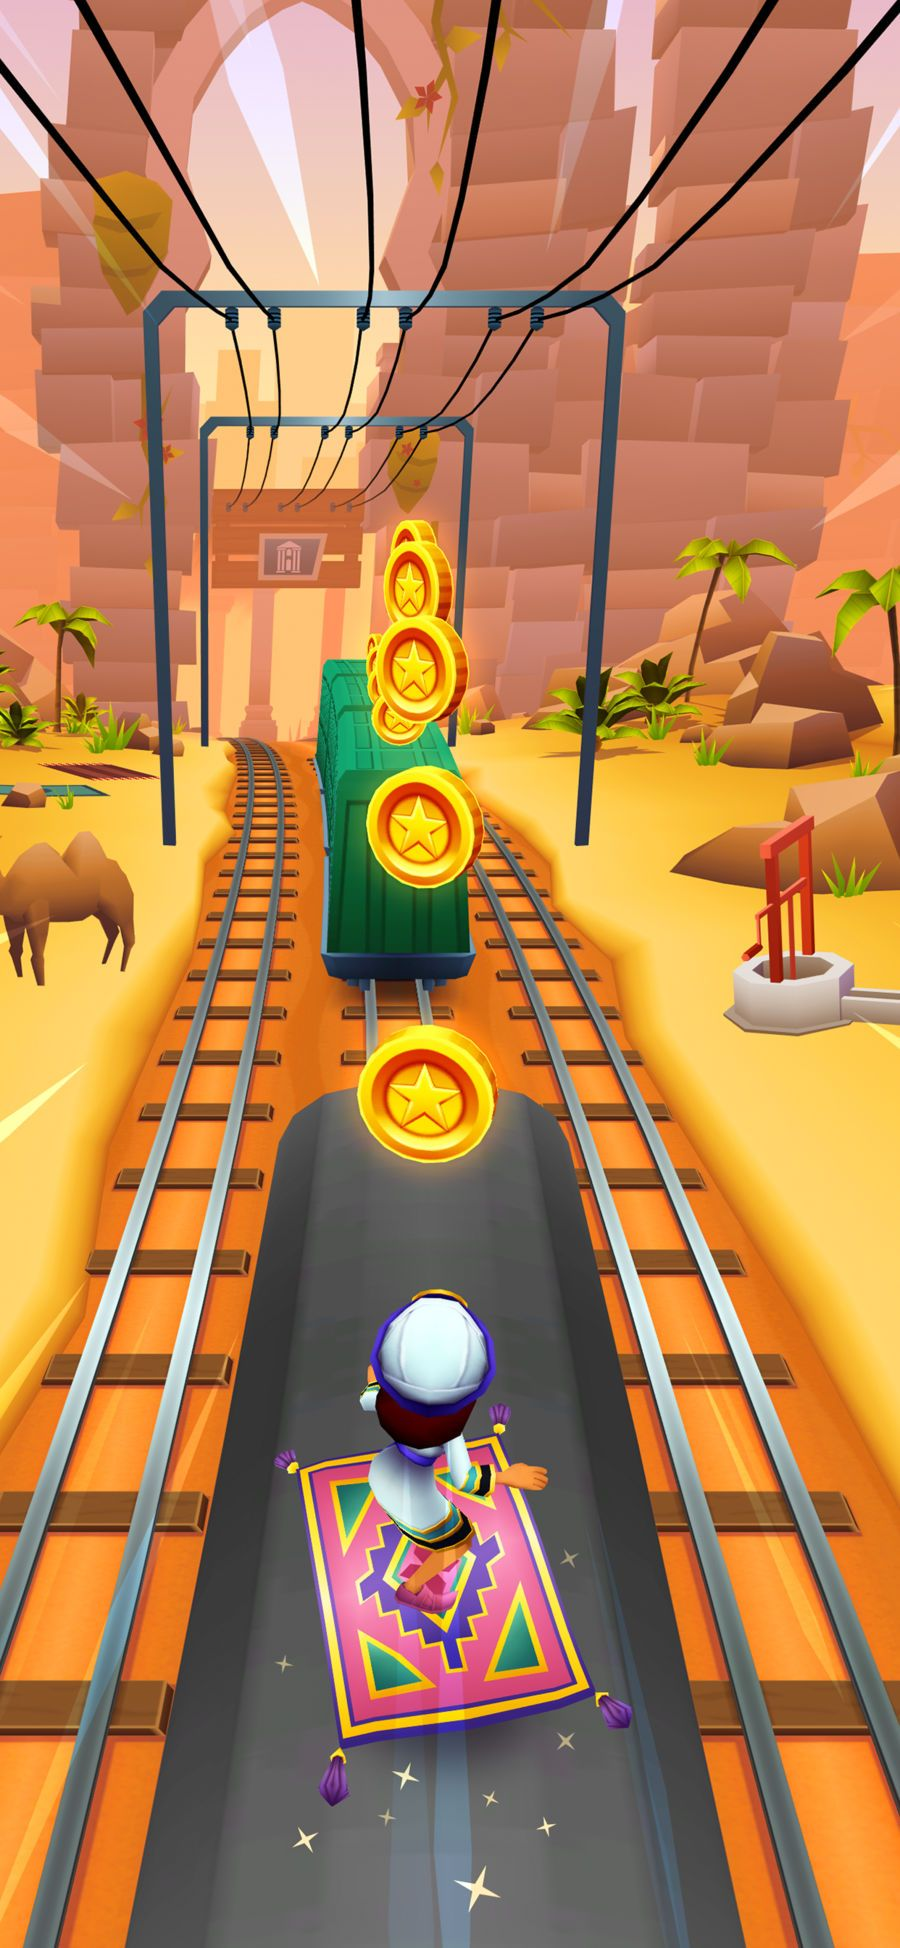 ‎Subway Surfers dans l'App Store Ipod, Ipod touch, Ipad